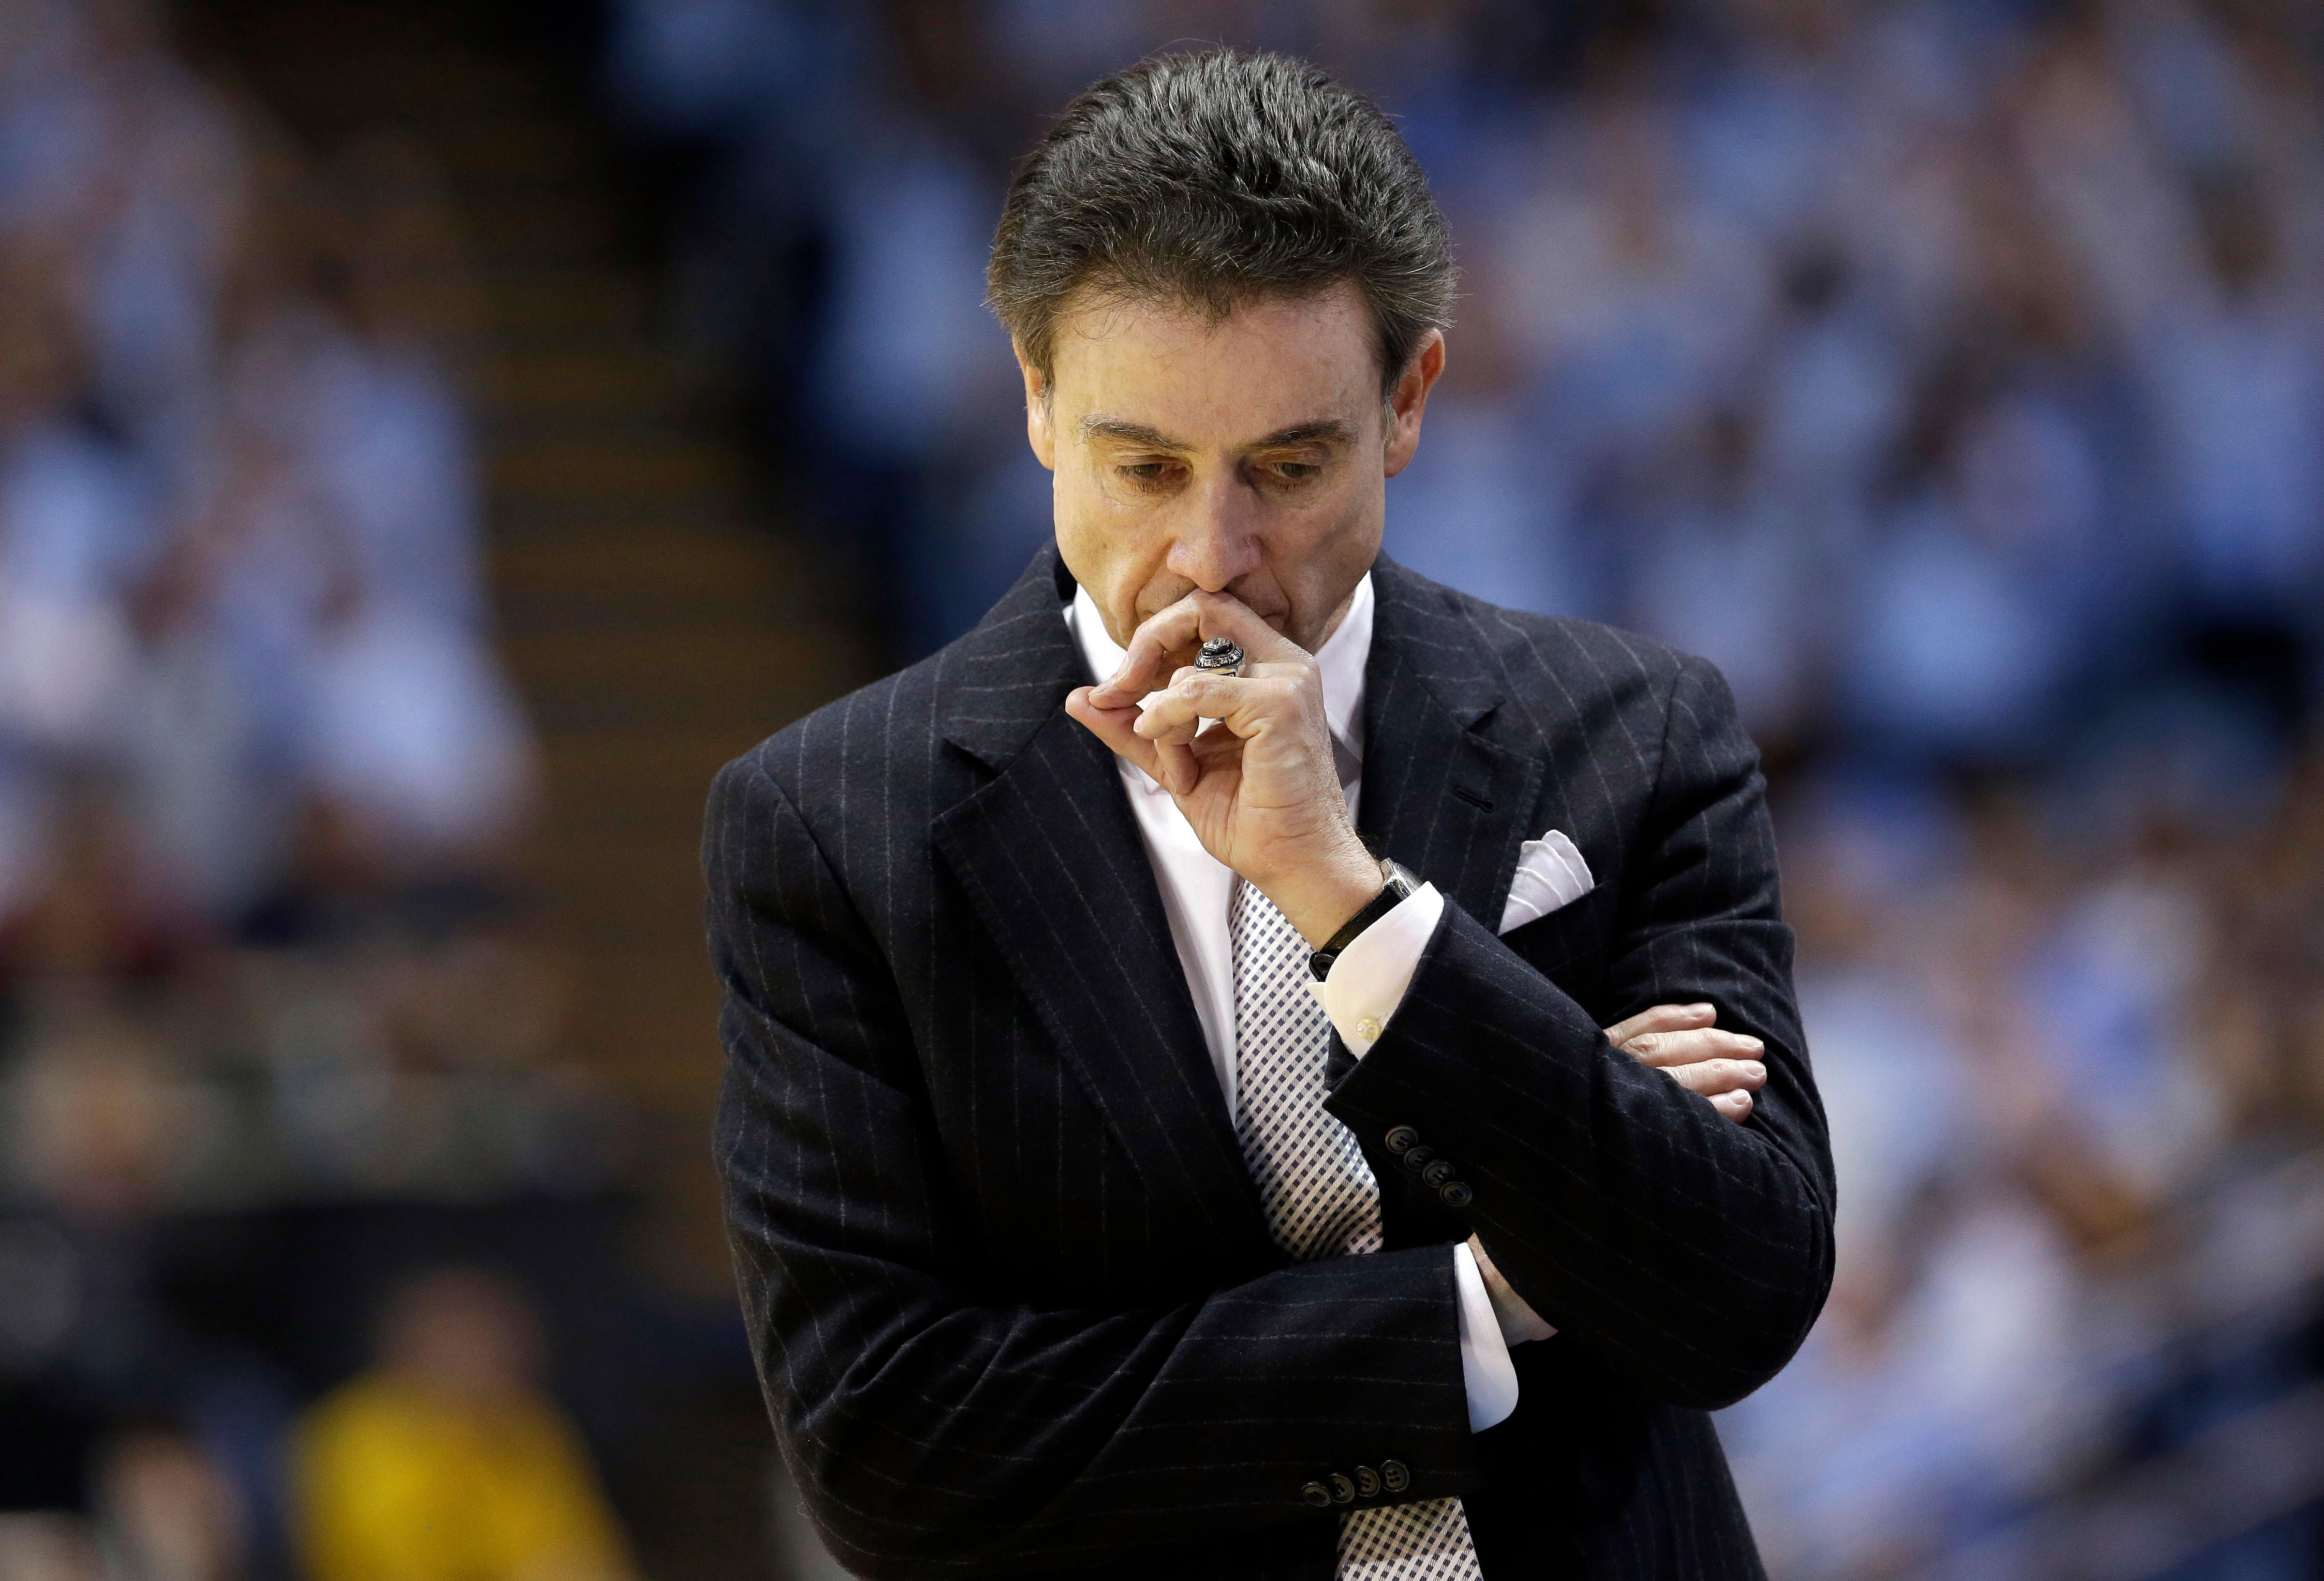 FILE- In this Jan. 10, 2015, file photo, Louisville's coach Rick Pitino pauses during the first half of an NCAA college basketball game against North Carolina in Chapel Hill, N.C. The NCAA suspended Pitino, Thursday, June 15, 2017, for five ACC games following sex scandal investigation. A former men's basketball staffer is alleged to have hired strippers to entertain players and recruits.   (AP Photo/Gerry Broome, File)